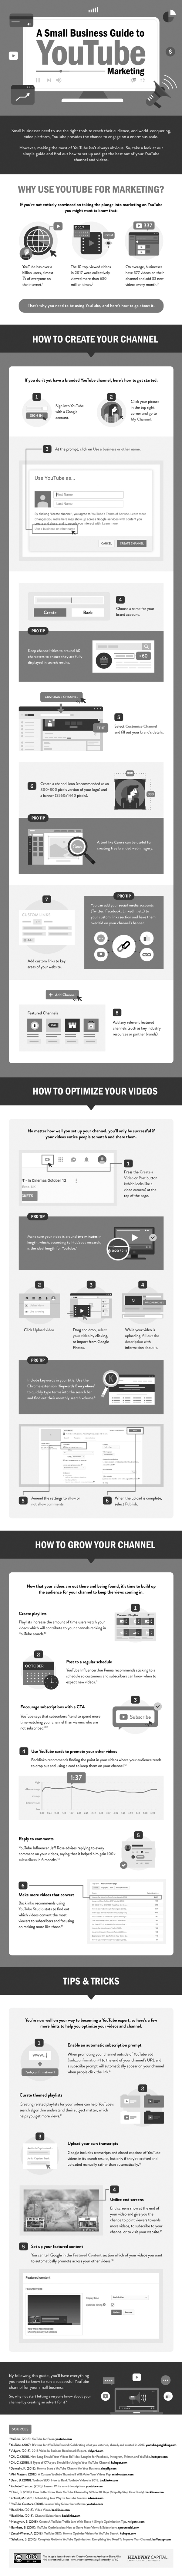 Get Started With YouTube Marketing for Your Small Business Infographic